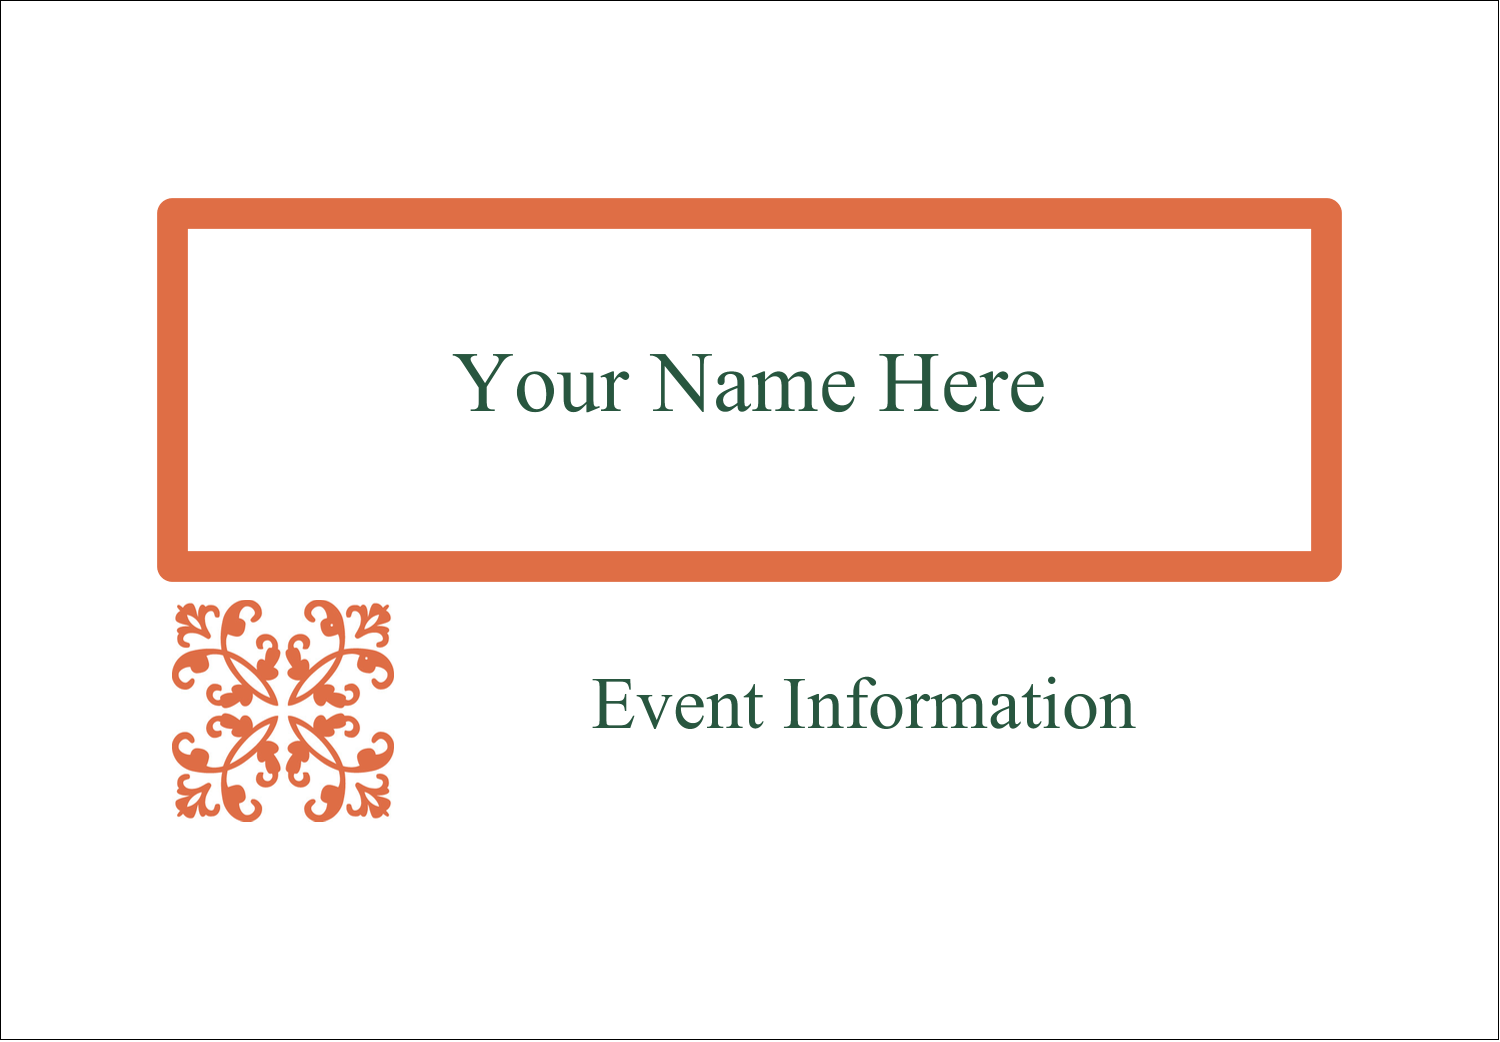 "2-11/12"" x 3⅜"" Name Badge Label - Arc Design Orange"